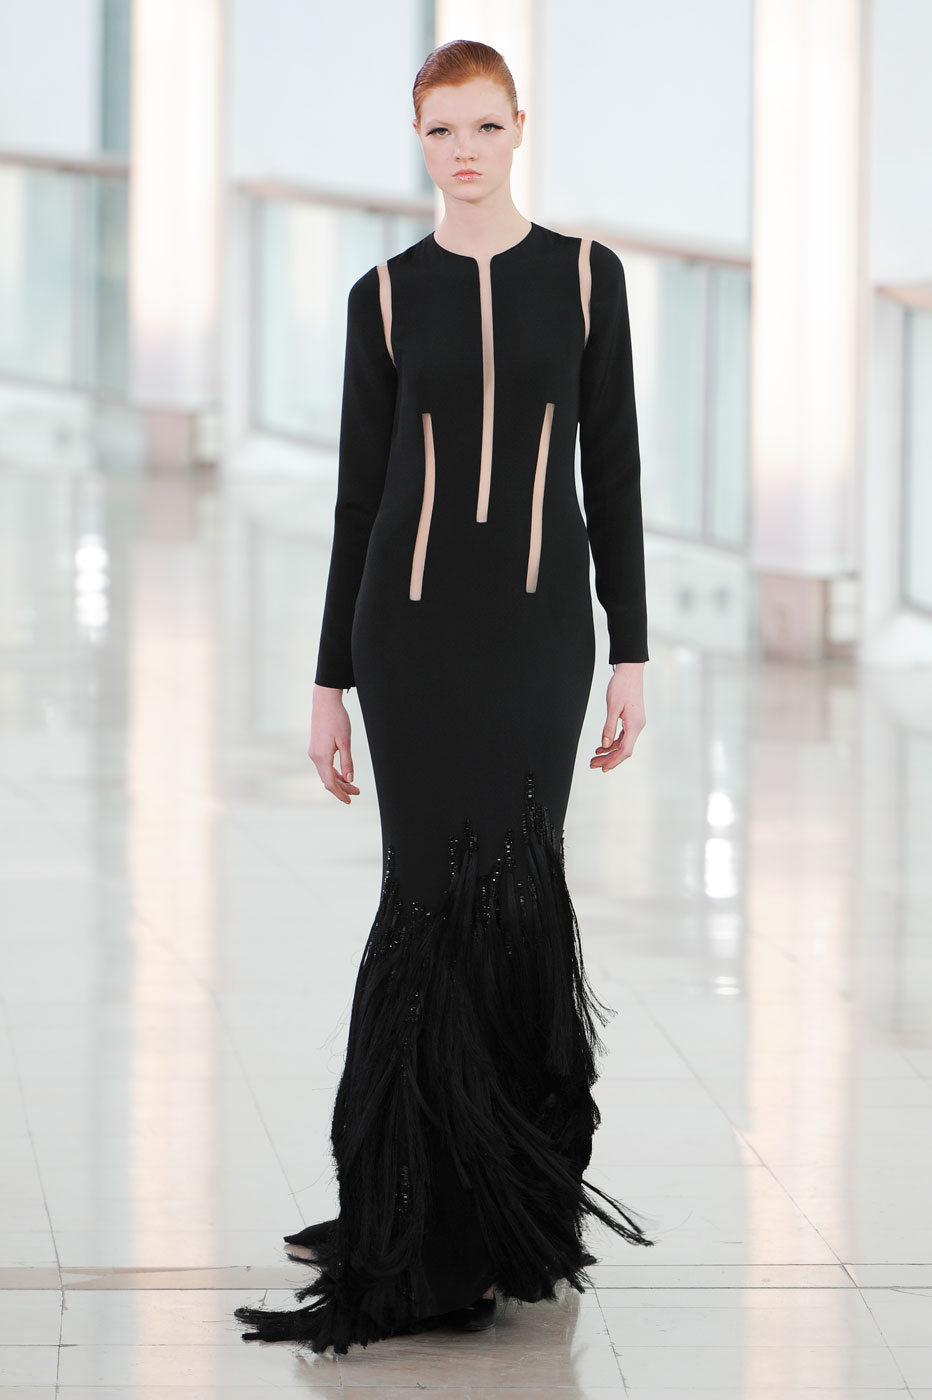 stephane-rolland-fashion-runway-show-haute-couture-paris-spring-2015-the-impression-32